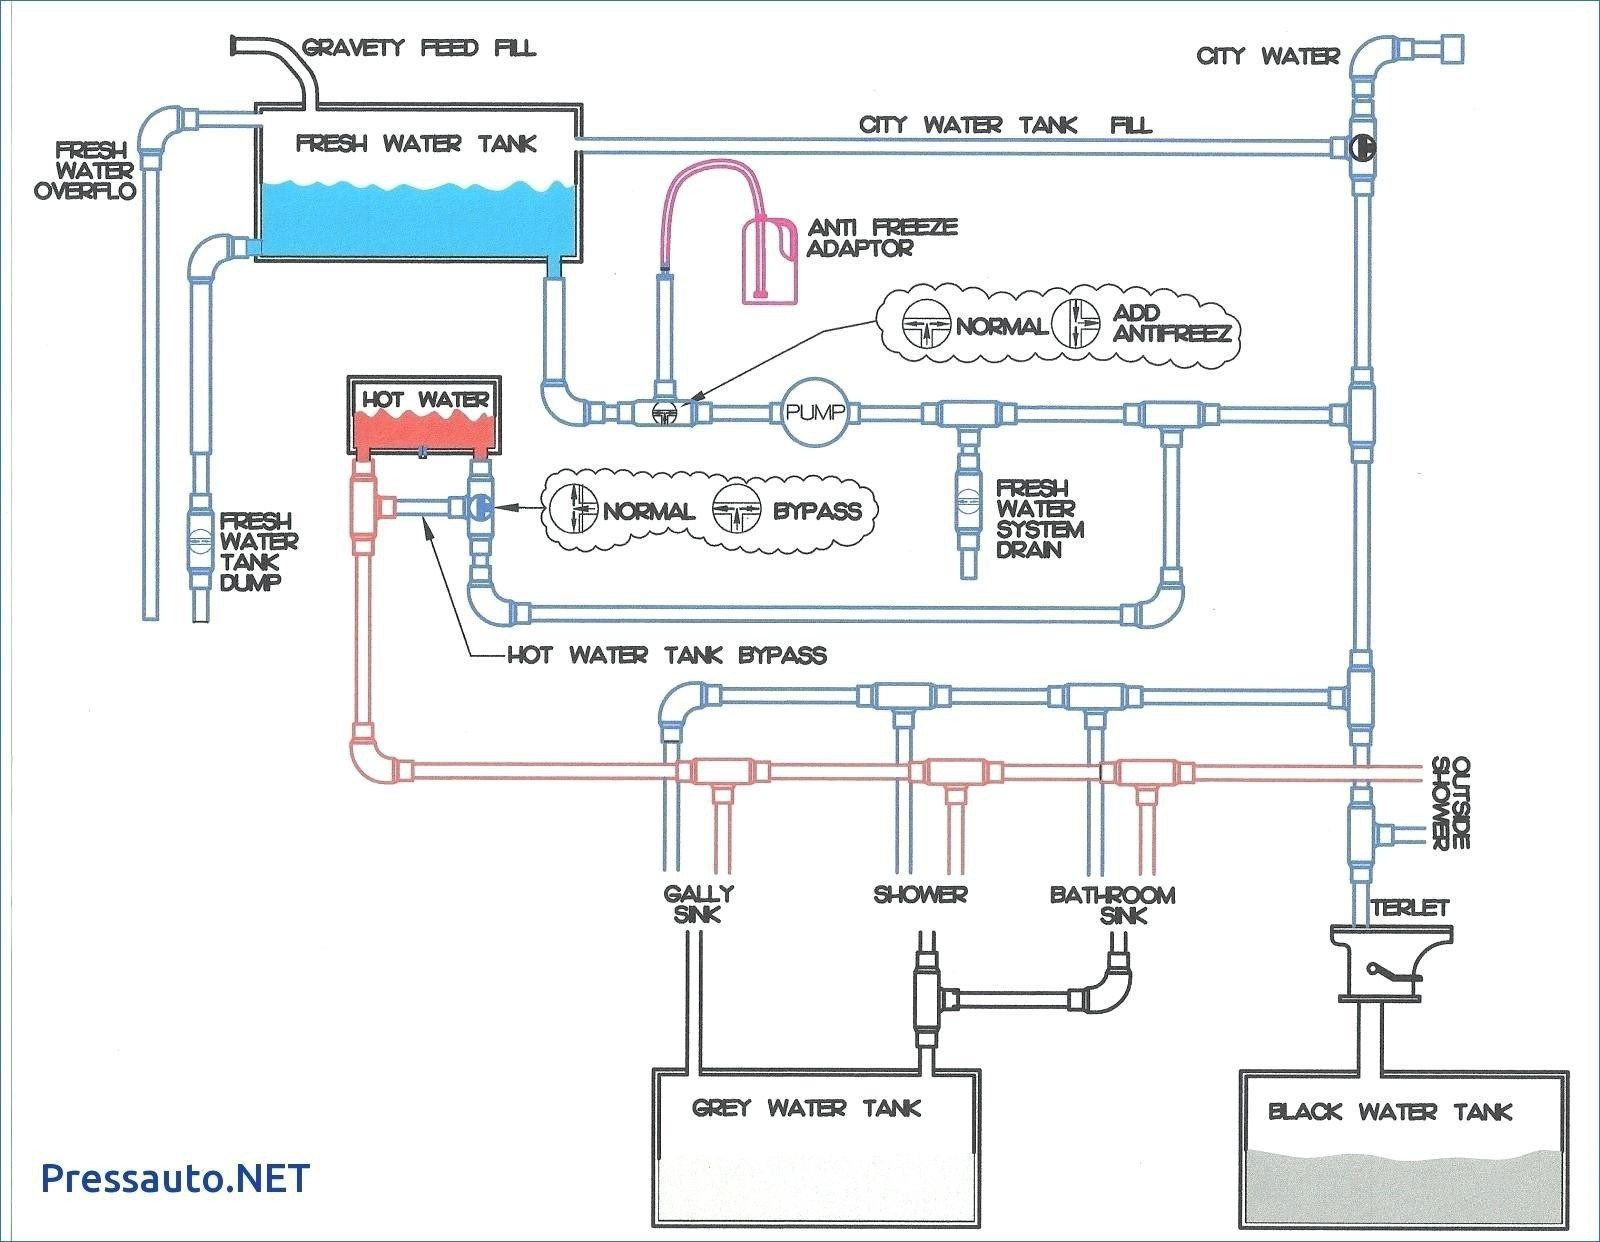 hight resolution of jayco hot water heater wiring diagram wiring diagram review jayco wiring diagram caravan wiring diagram teardrop